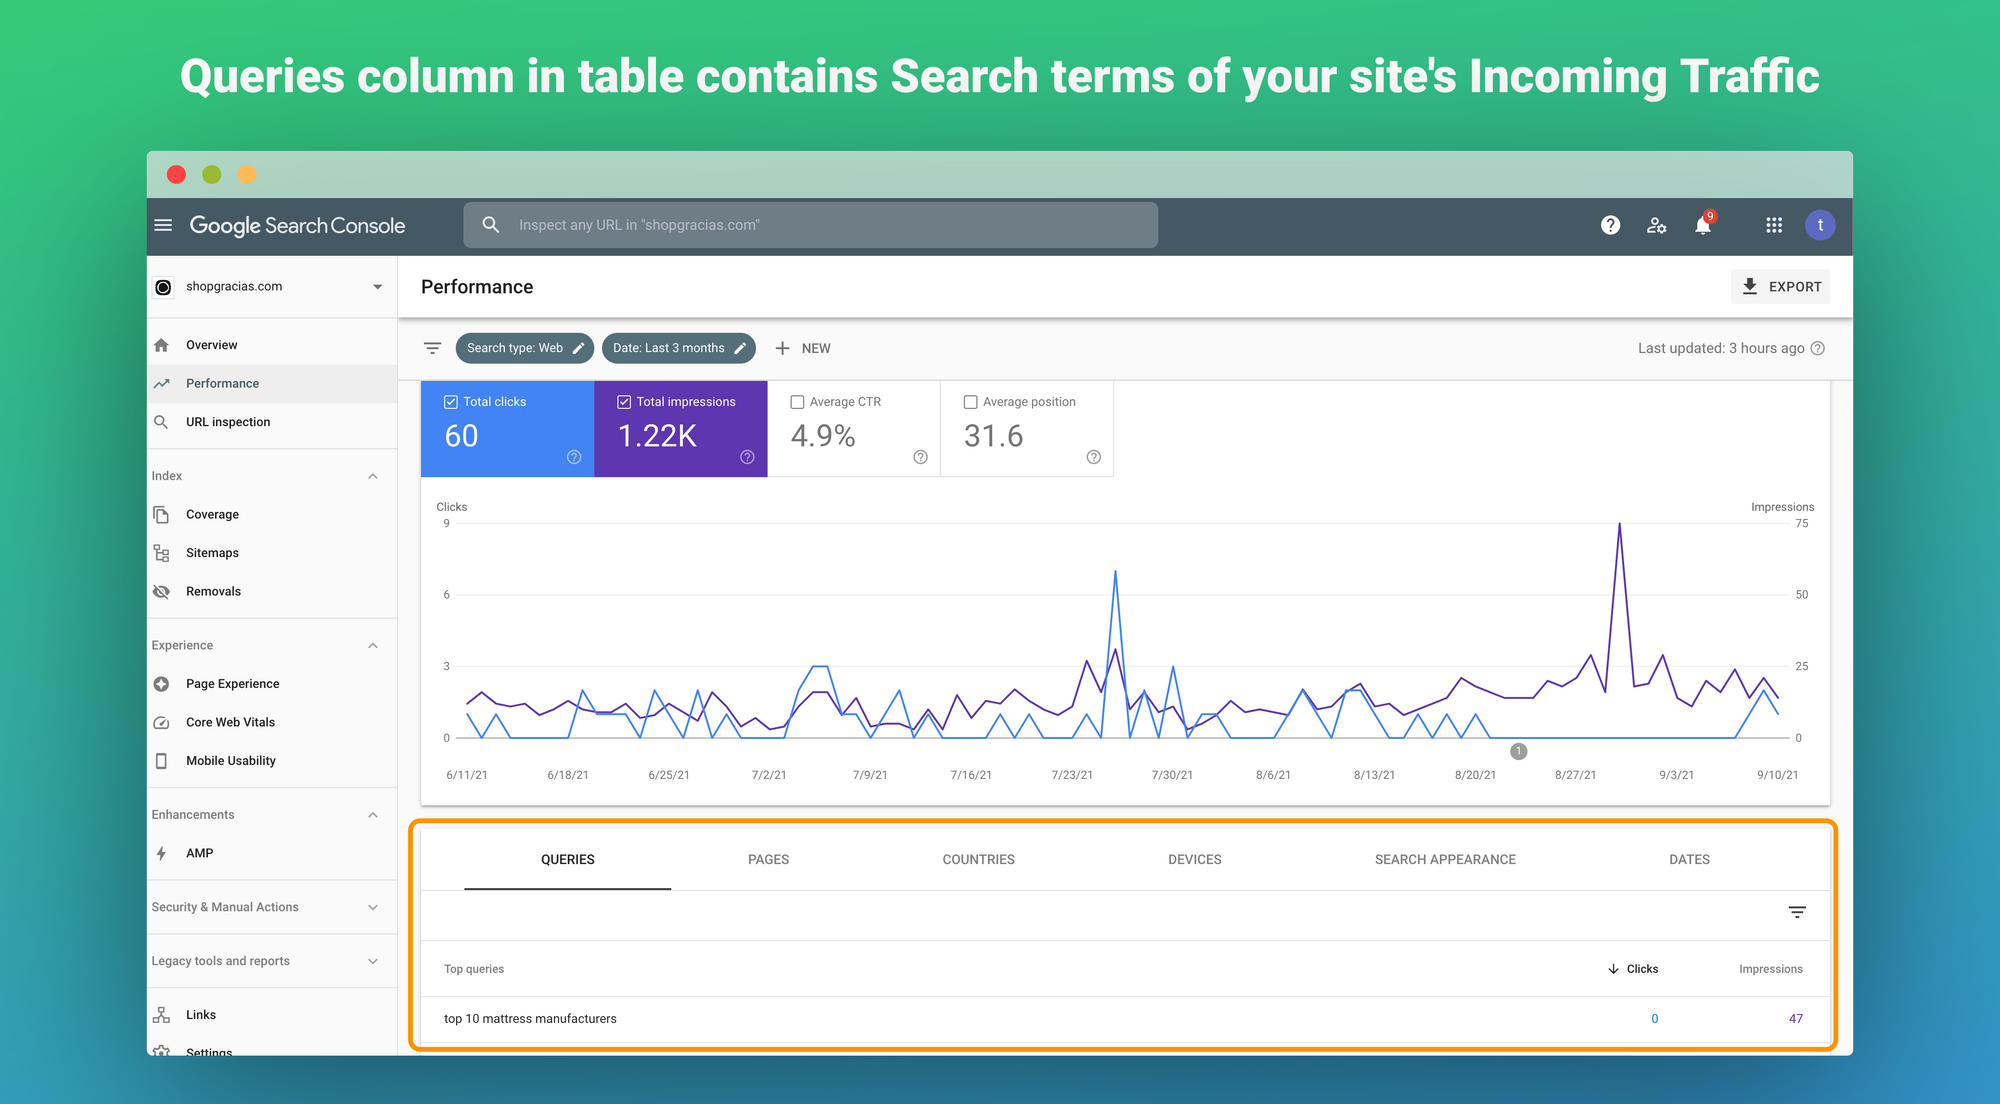 Queries column in table contains Search terms of your site's Incoming Traffic